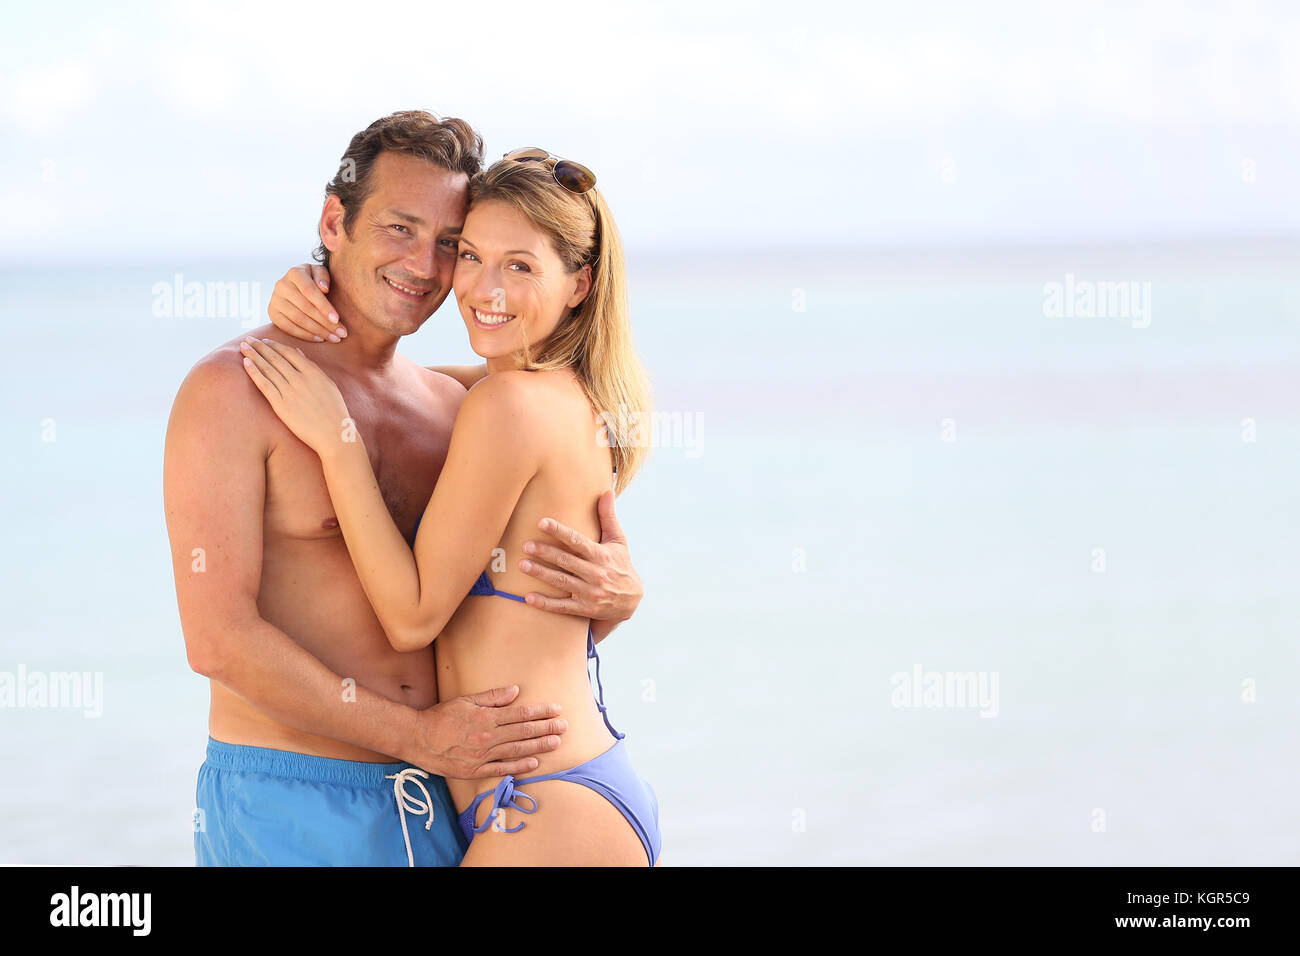 Loving couple in swimsuit embracing at the beach - Stock Image